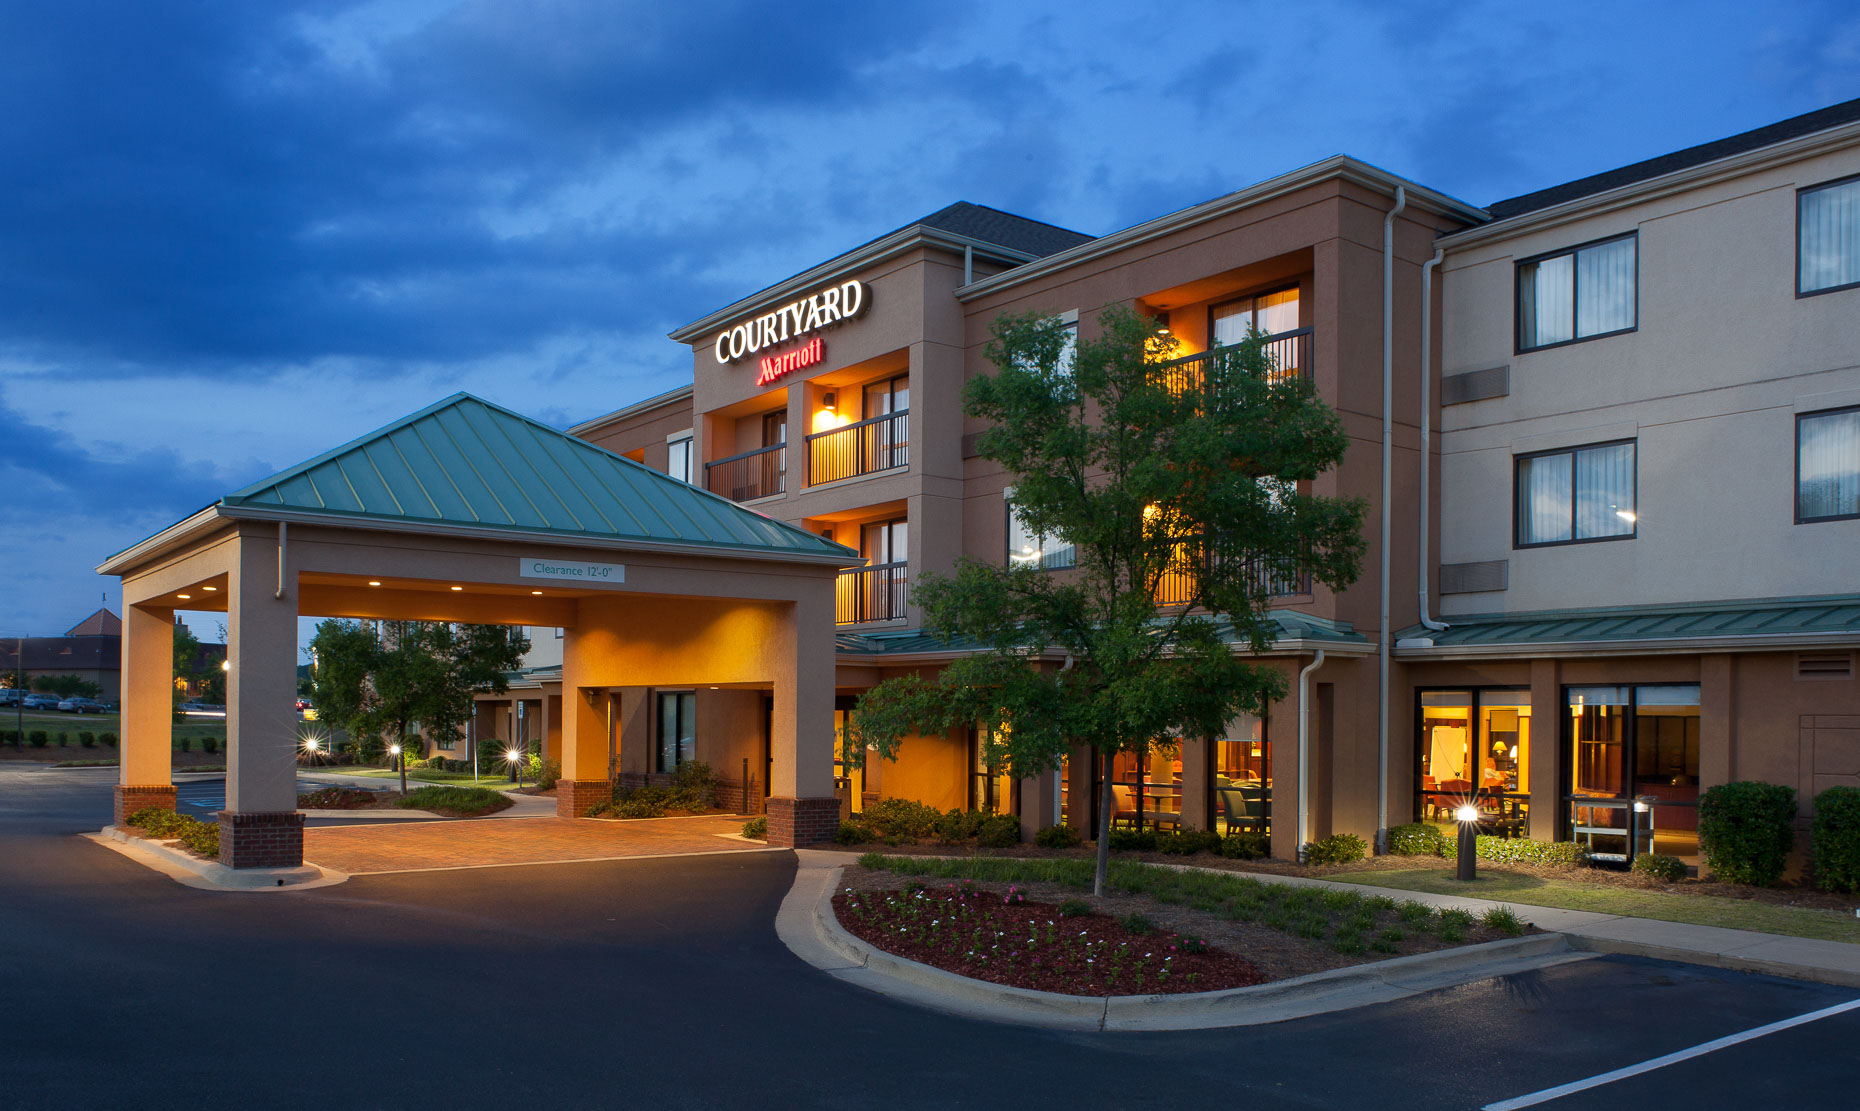 Courtyard Marriott - Mark Borosch Photography - Prattville, AL